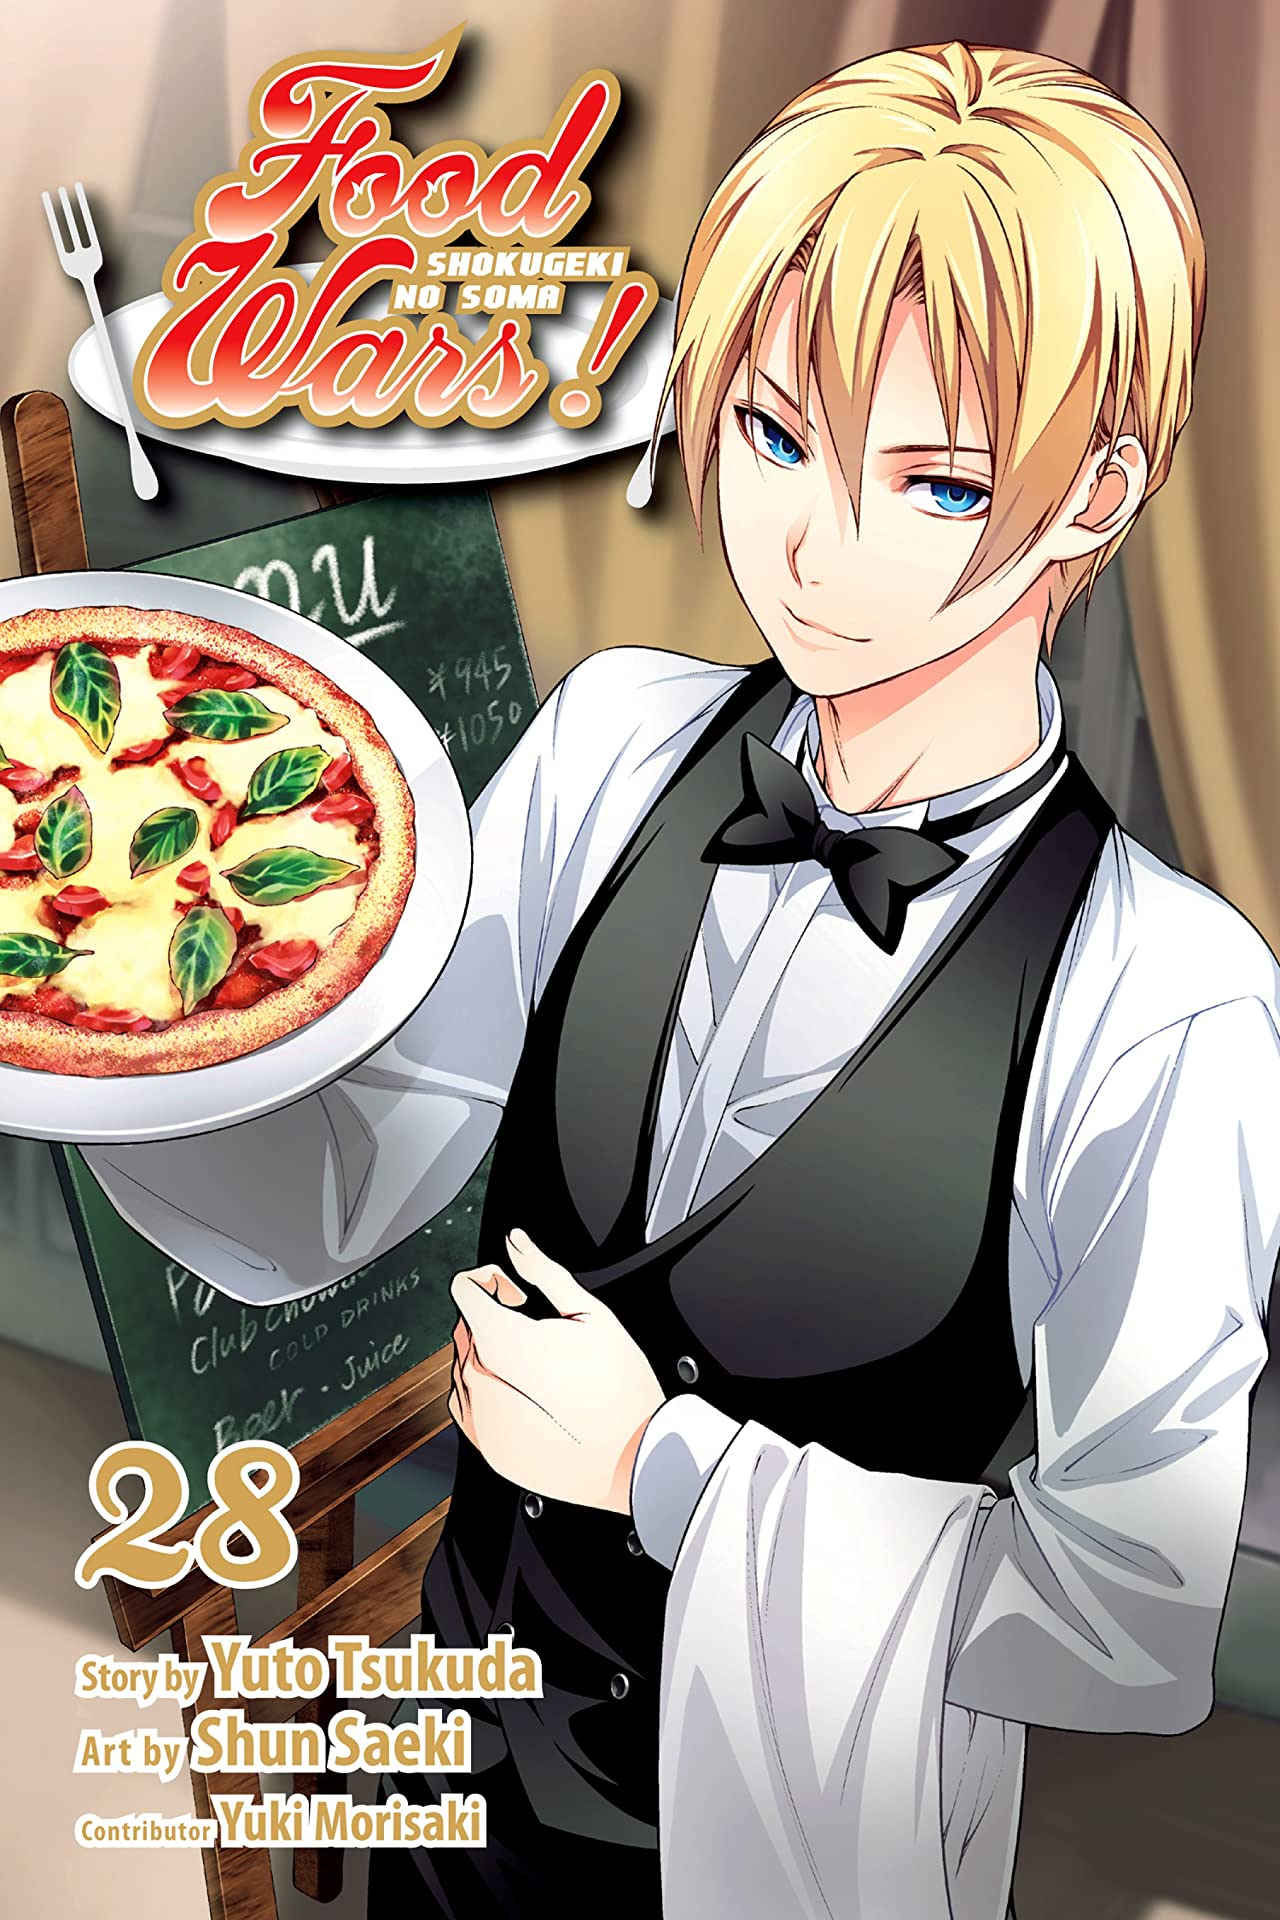 Food Wars!: Shokugeki no Soma Vol. 28